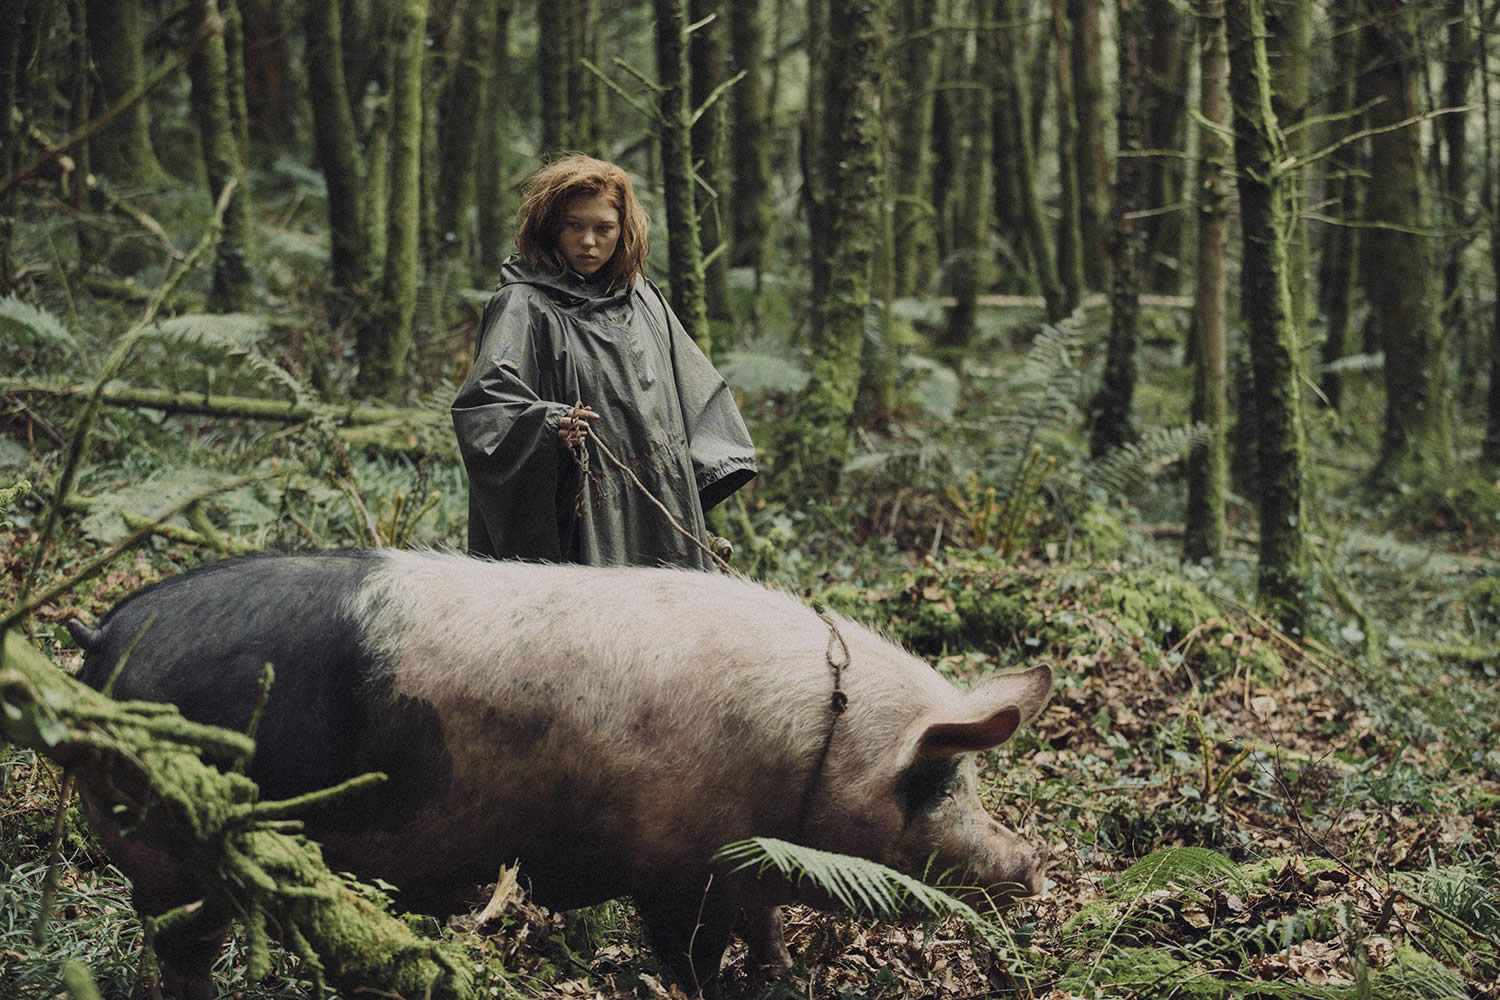 girl with pig in forest, The Lobster movie